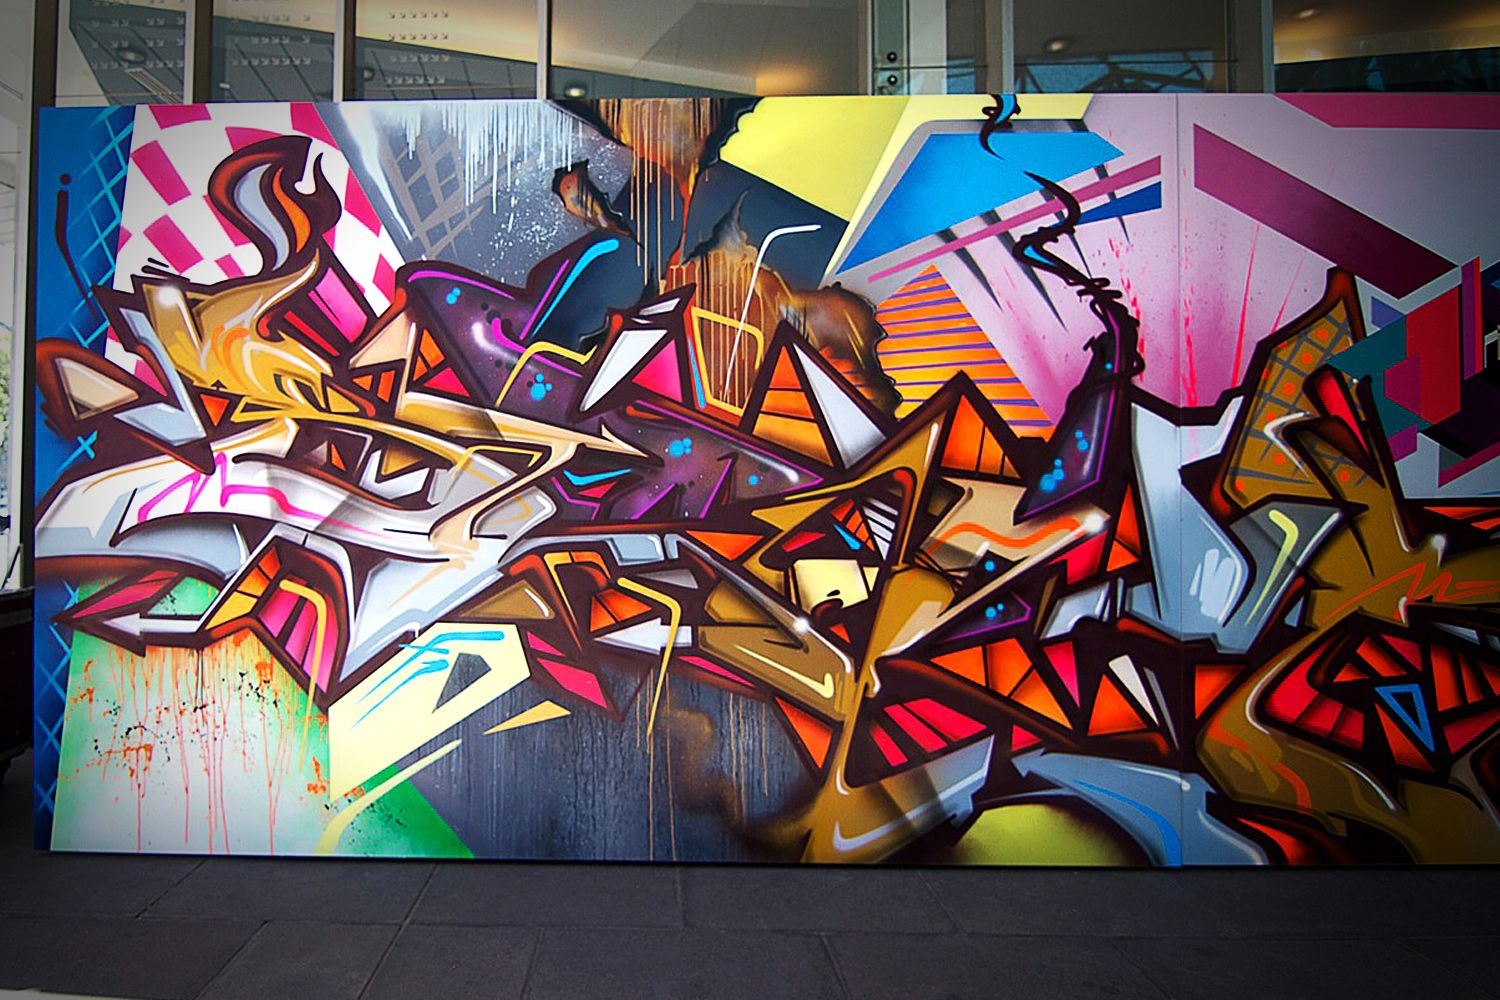 Graffiti wall painting - Sirum_graffiti Wall Art_63 Jpg 1500 1000